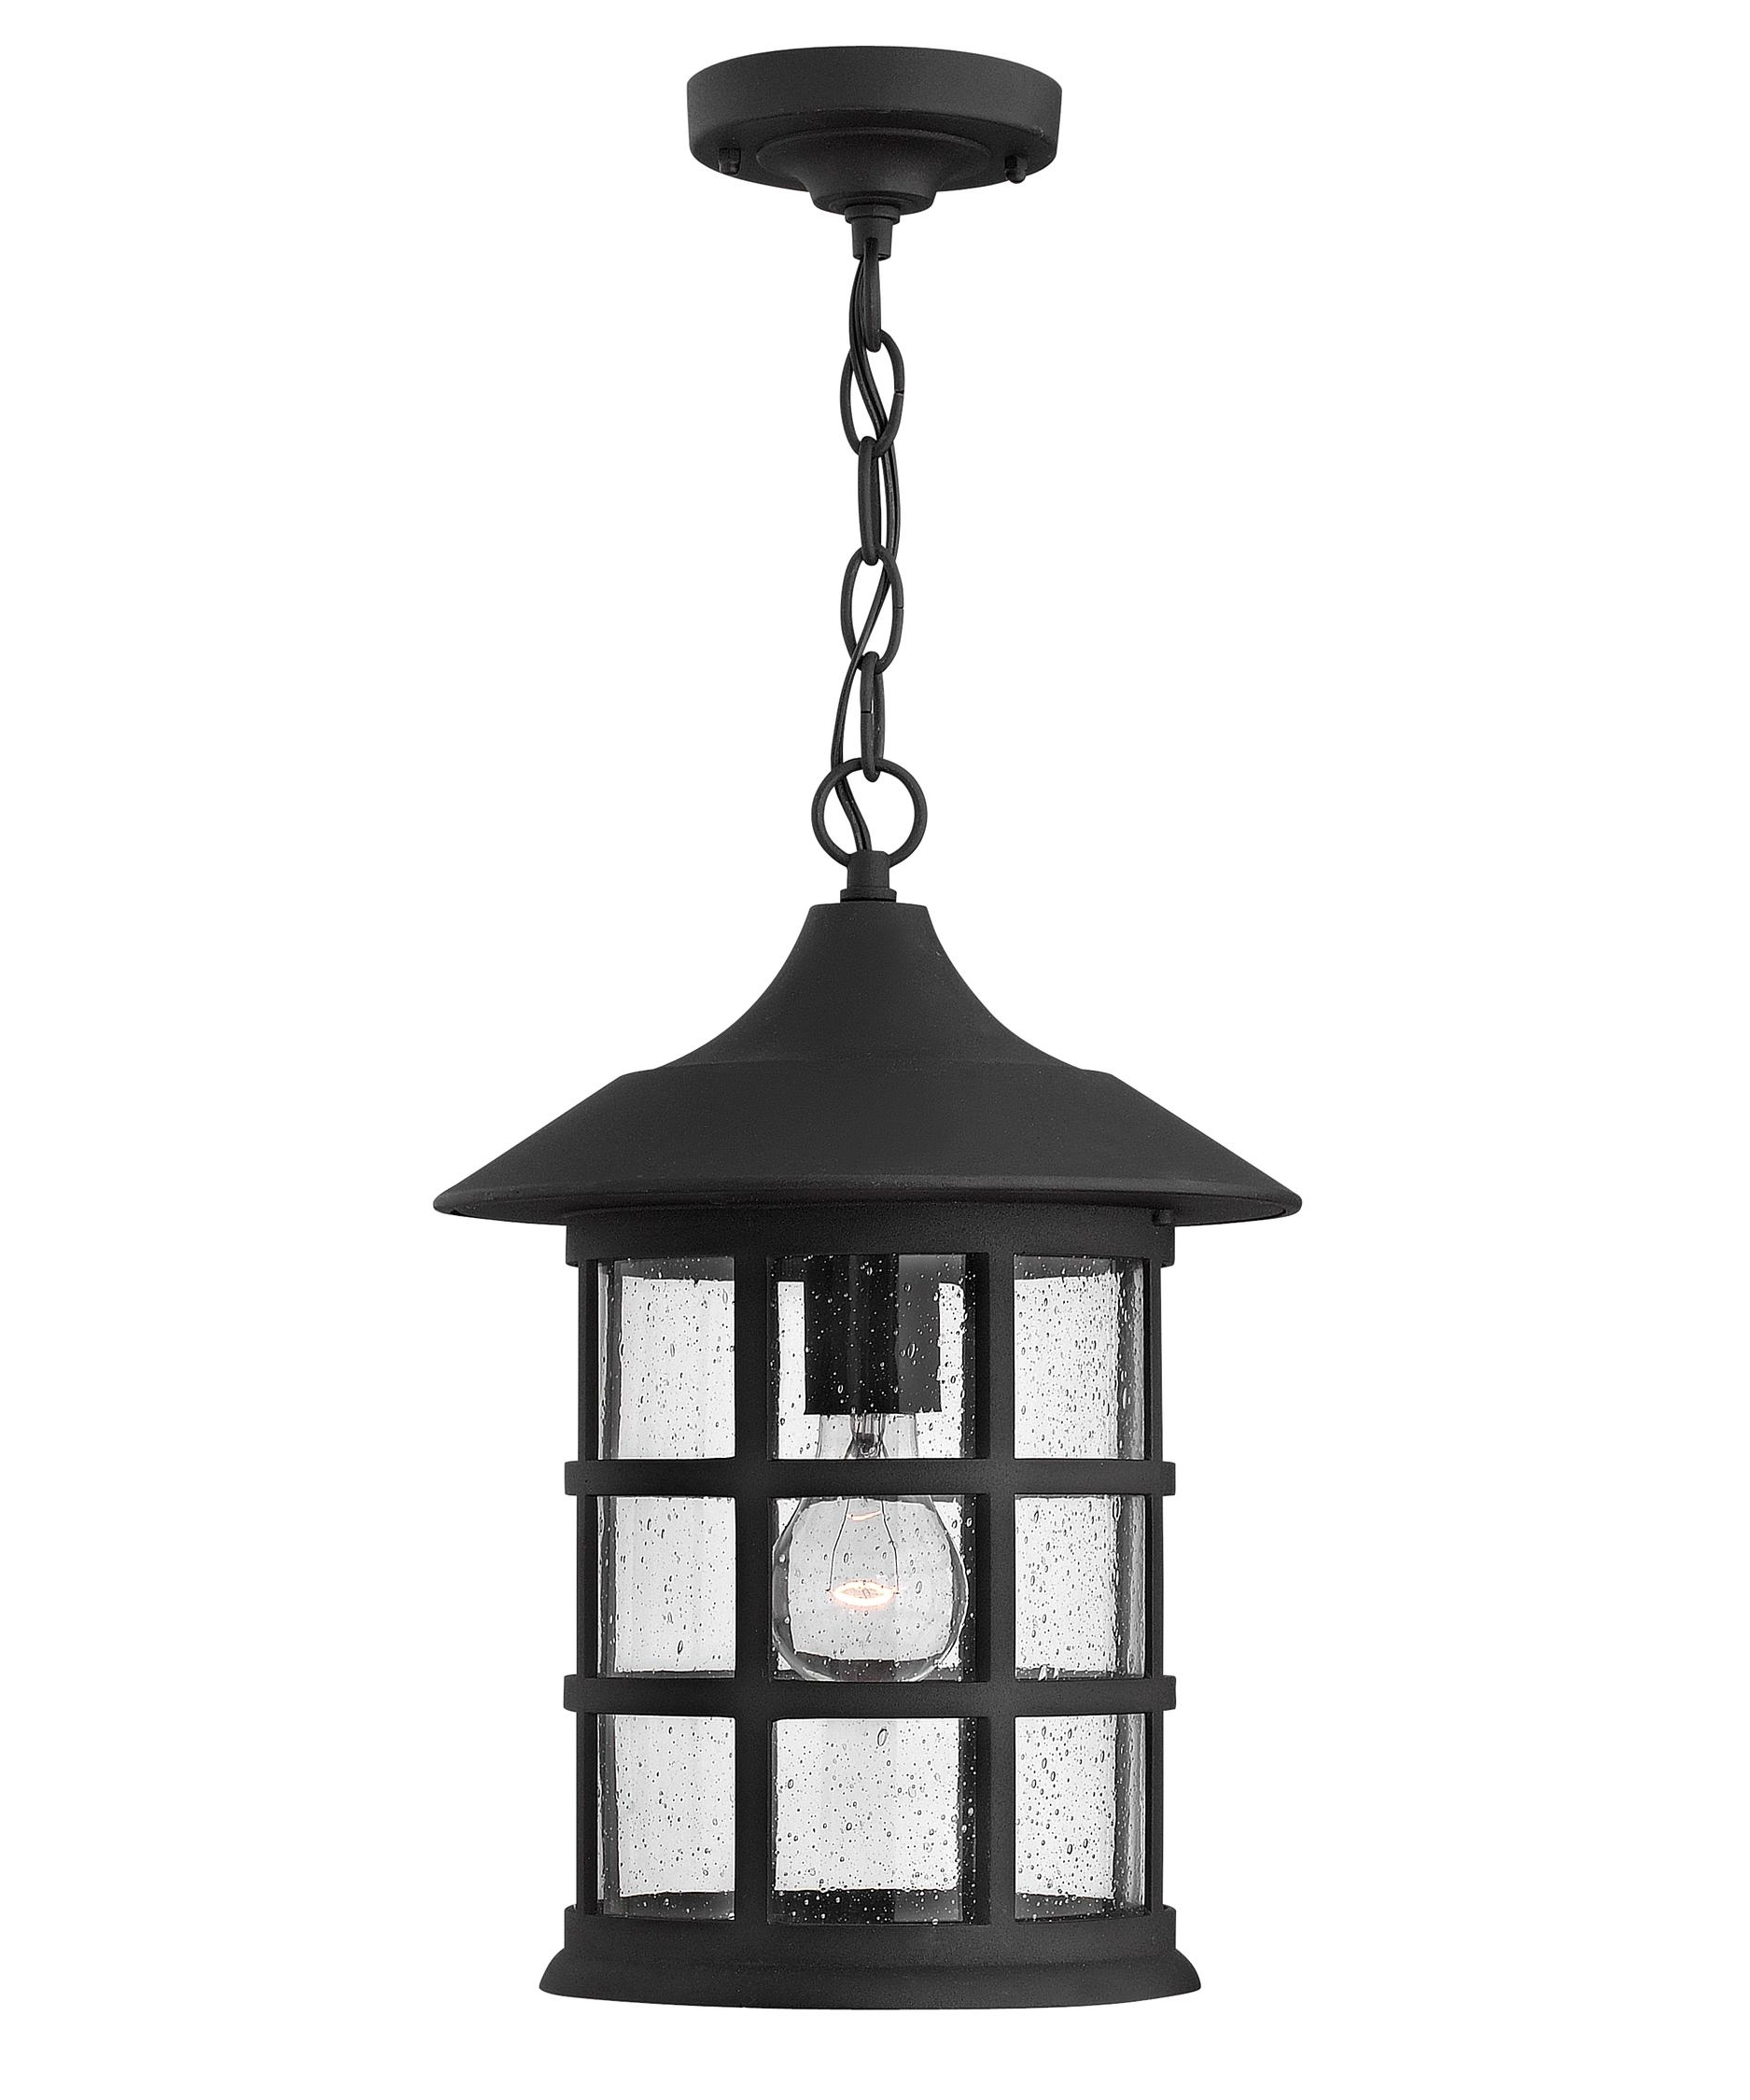 Contemporary Hanging Porch Hinkley Lighting Pertaining To 2019 Hinkley Lighting 1802 Freeport 10 Inch Wide 1 Light Outdoor Hanging (View 7 of 20)